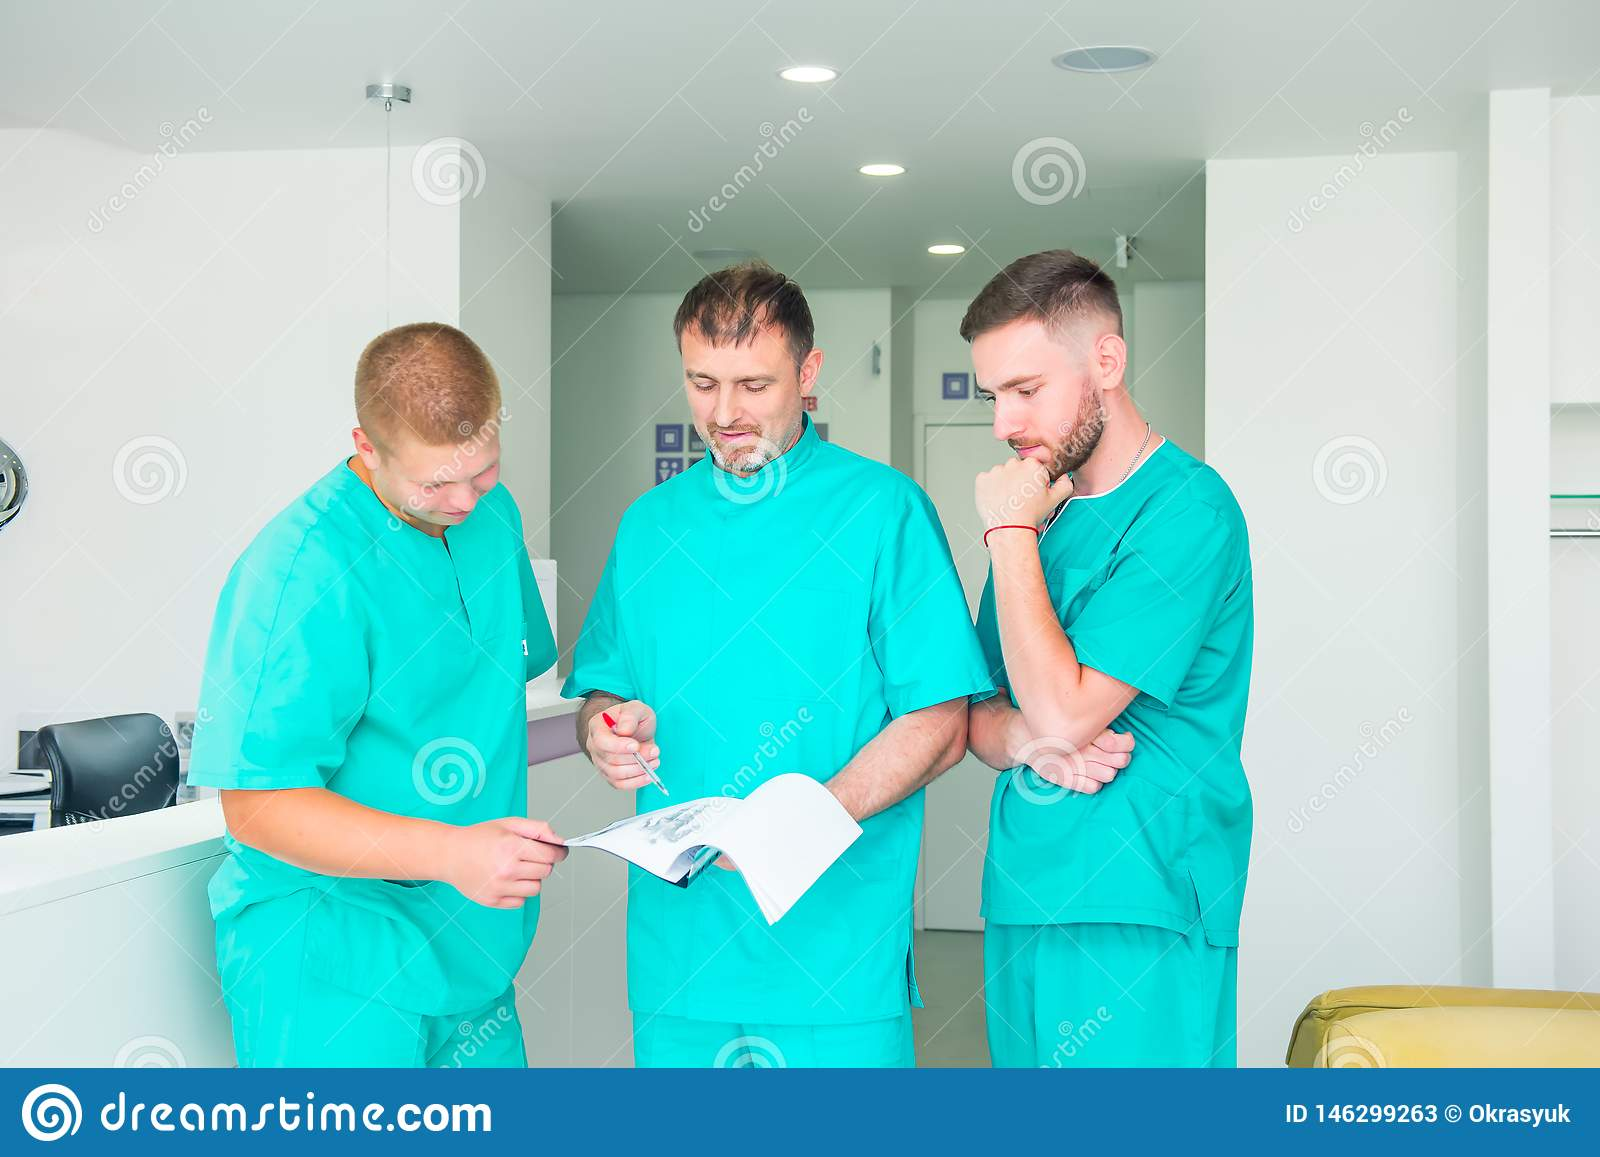 Group of medical staff discussing patient results in clinic. Healthcare professionals having discussion in hospital. Experienced